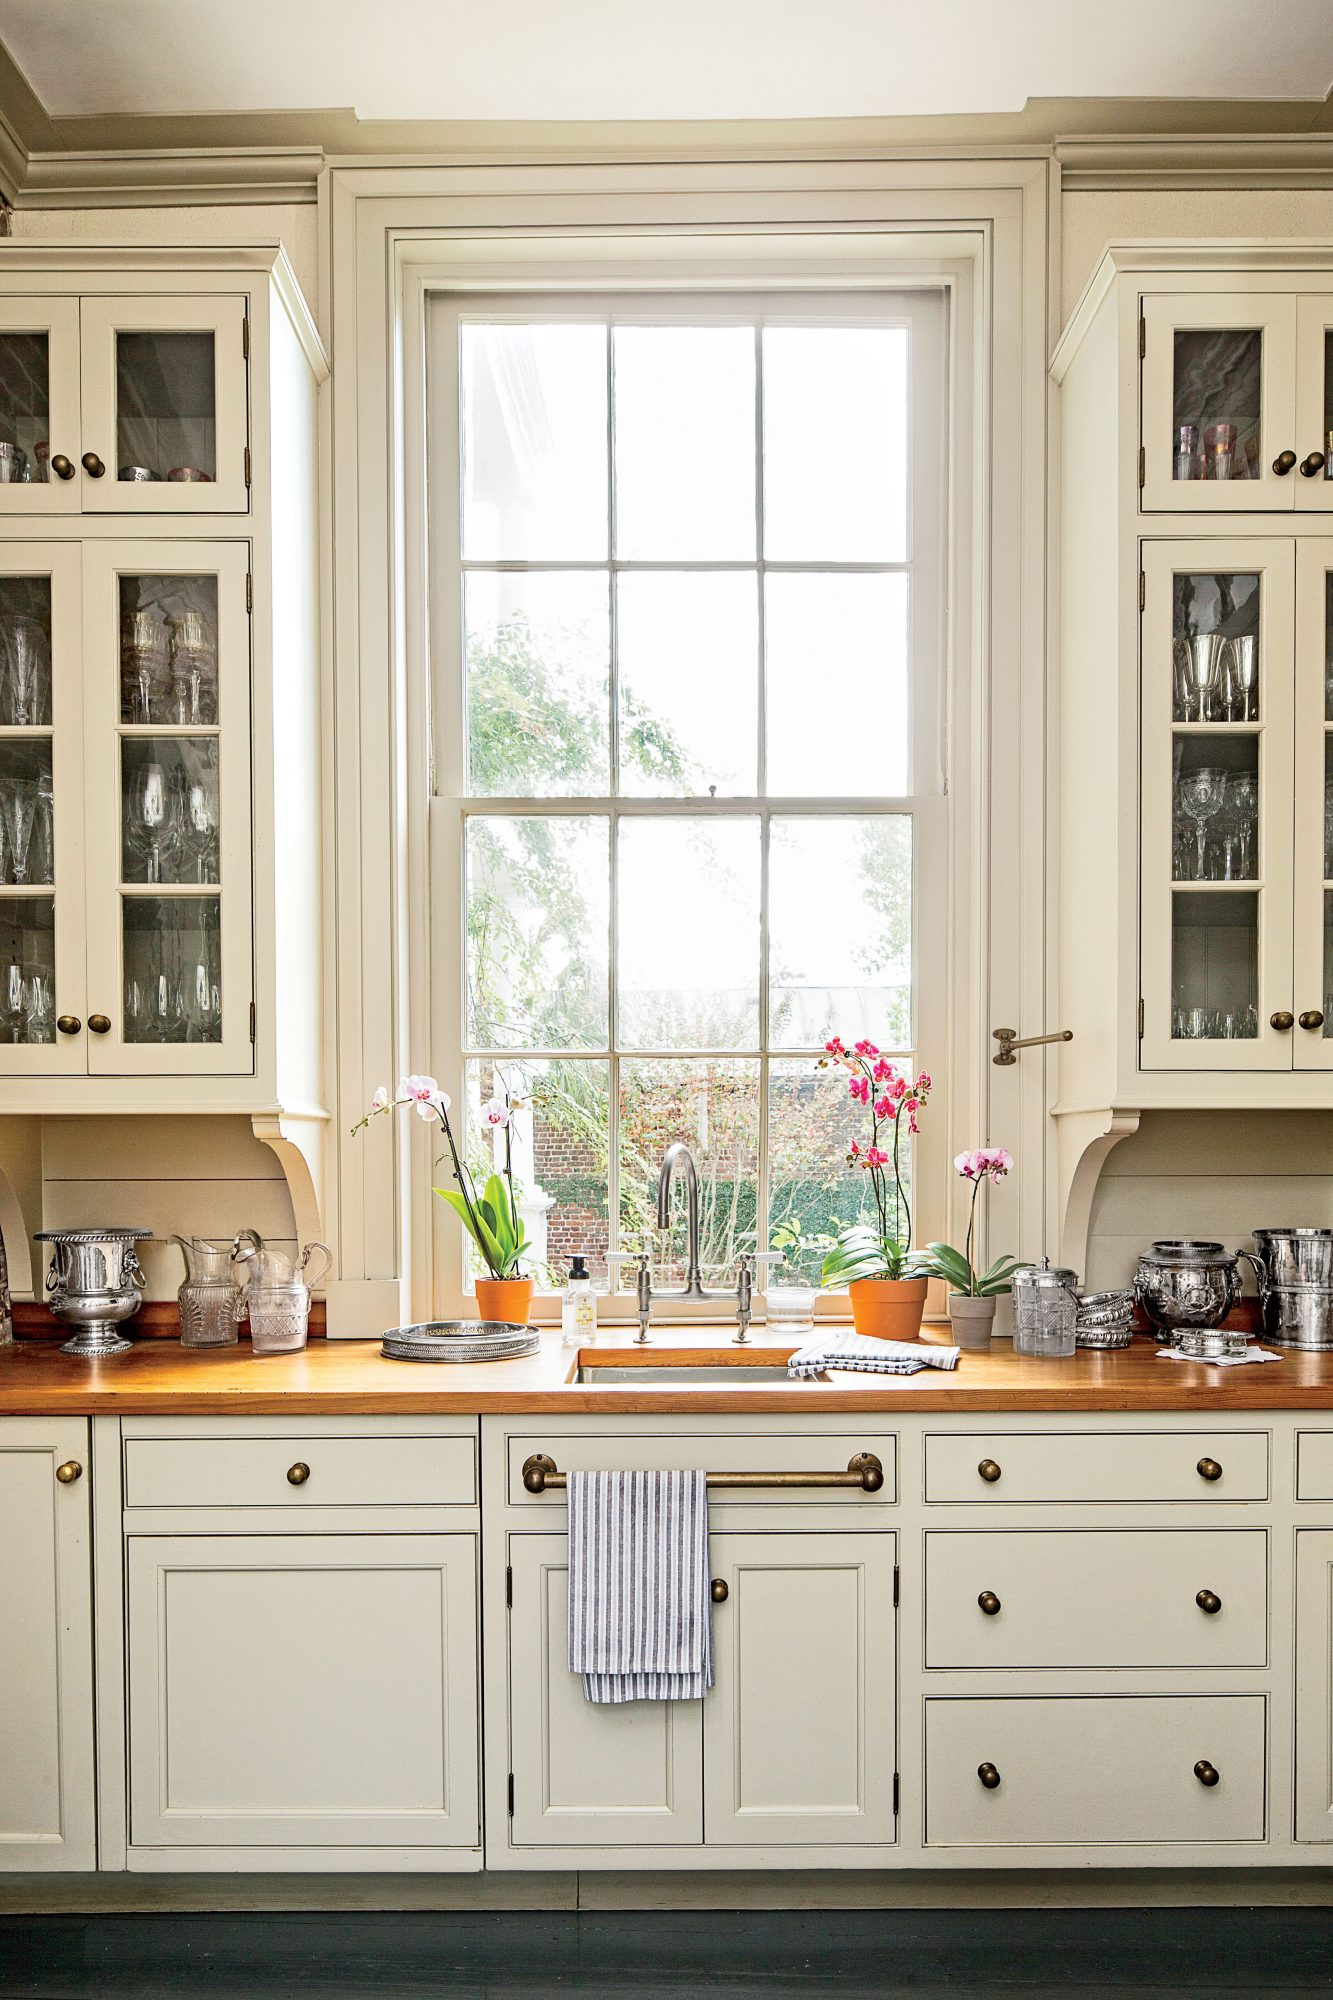 Command Hooks Kitchen Uses - Southern Living